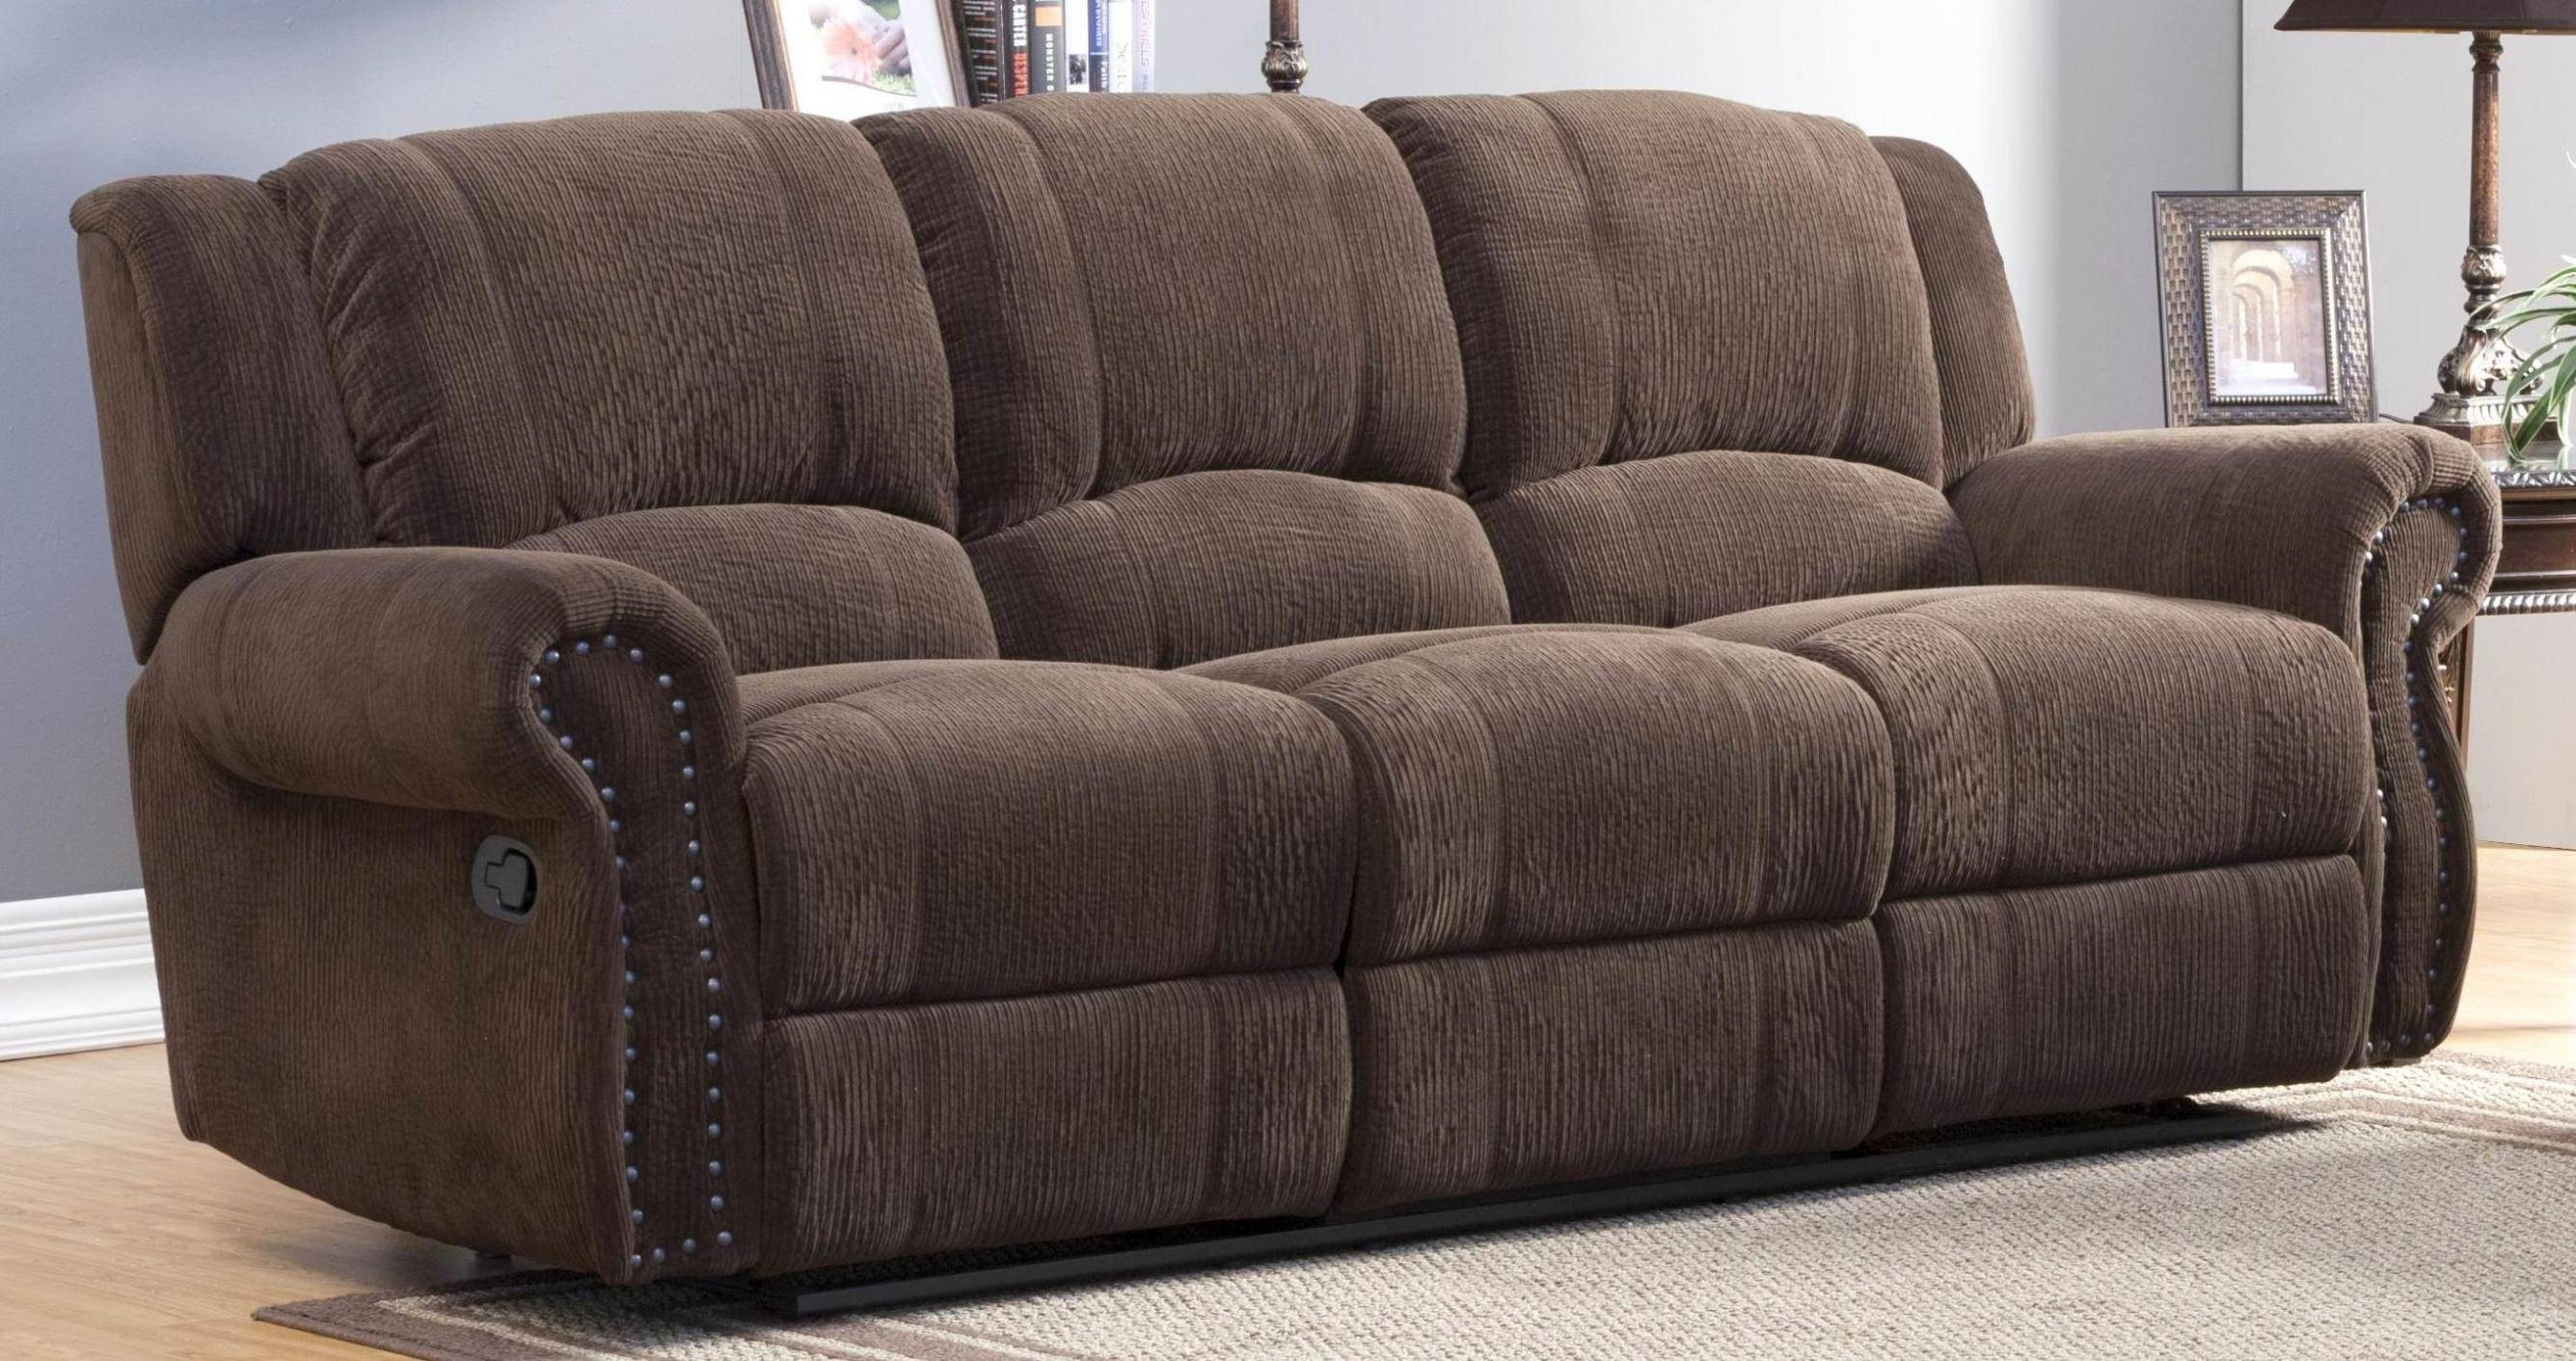 Top 30 of Slipcover for Leather Sectional Sofas